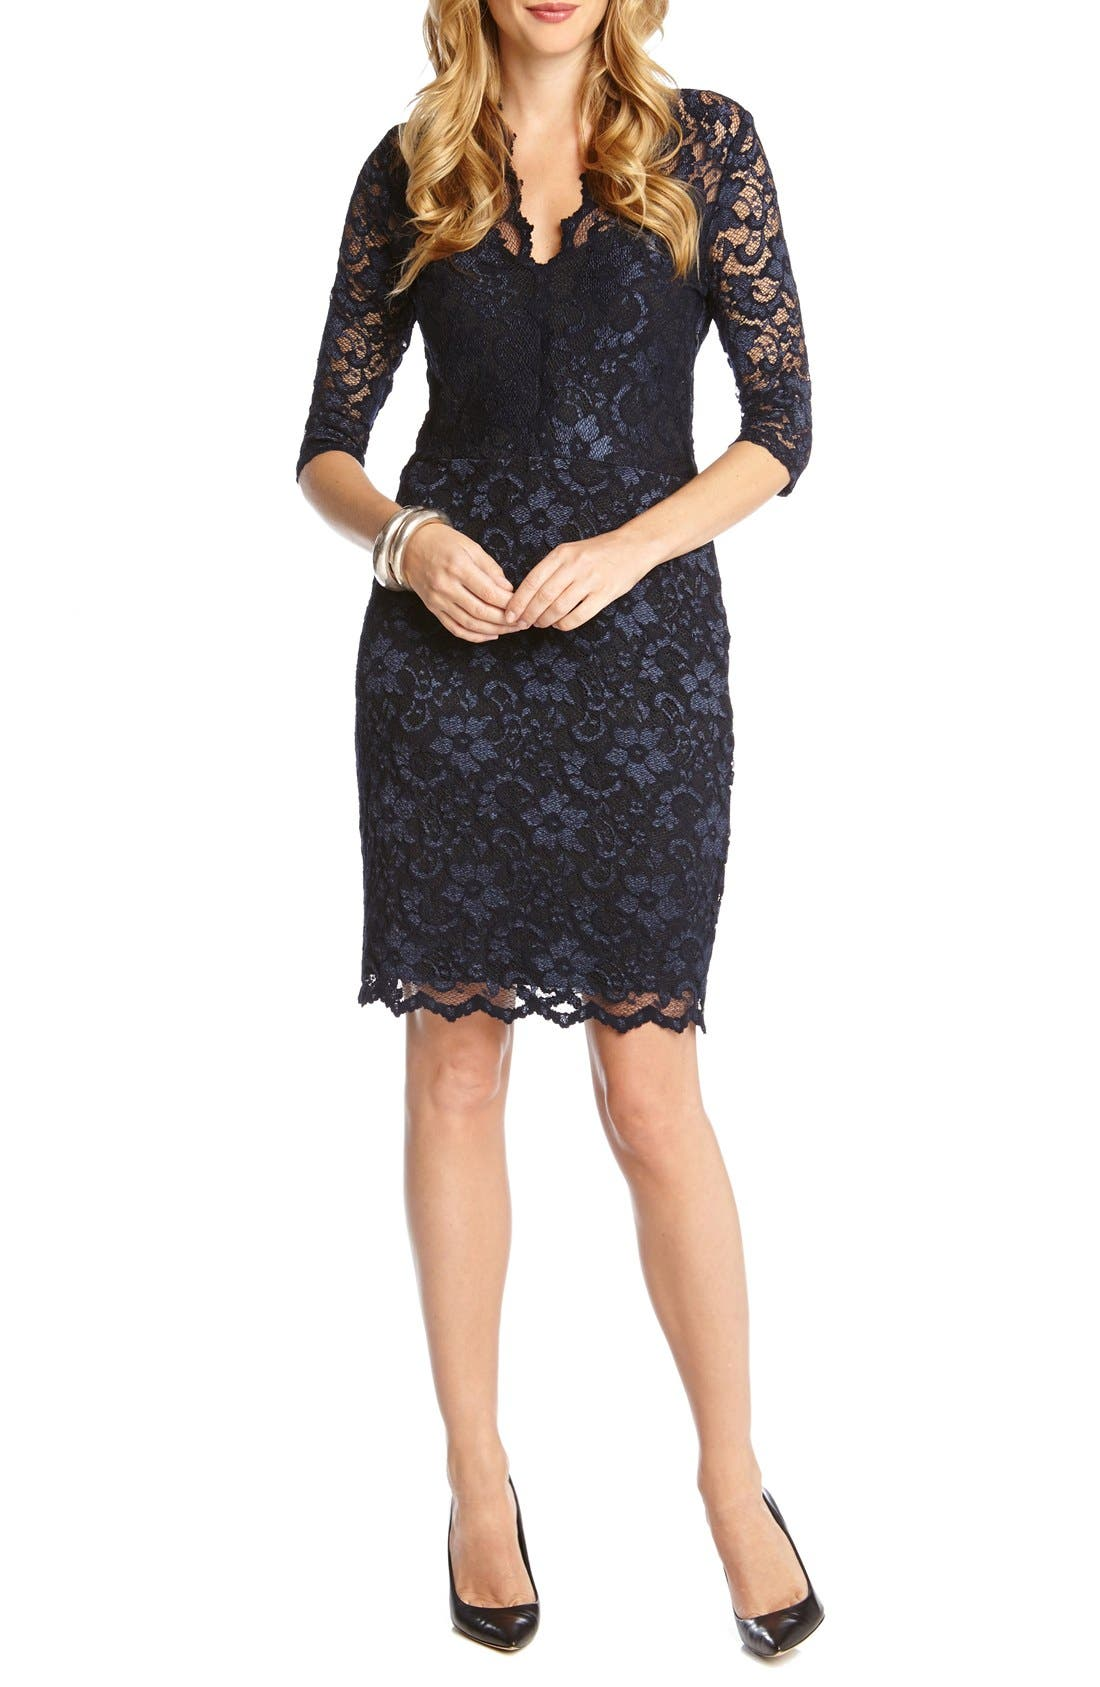 Alternate Image 1 Selected - Karen Kane Scalloped Lace Sheath Dress (Regular & Petite)